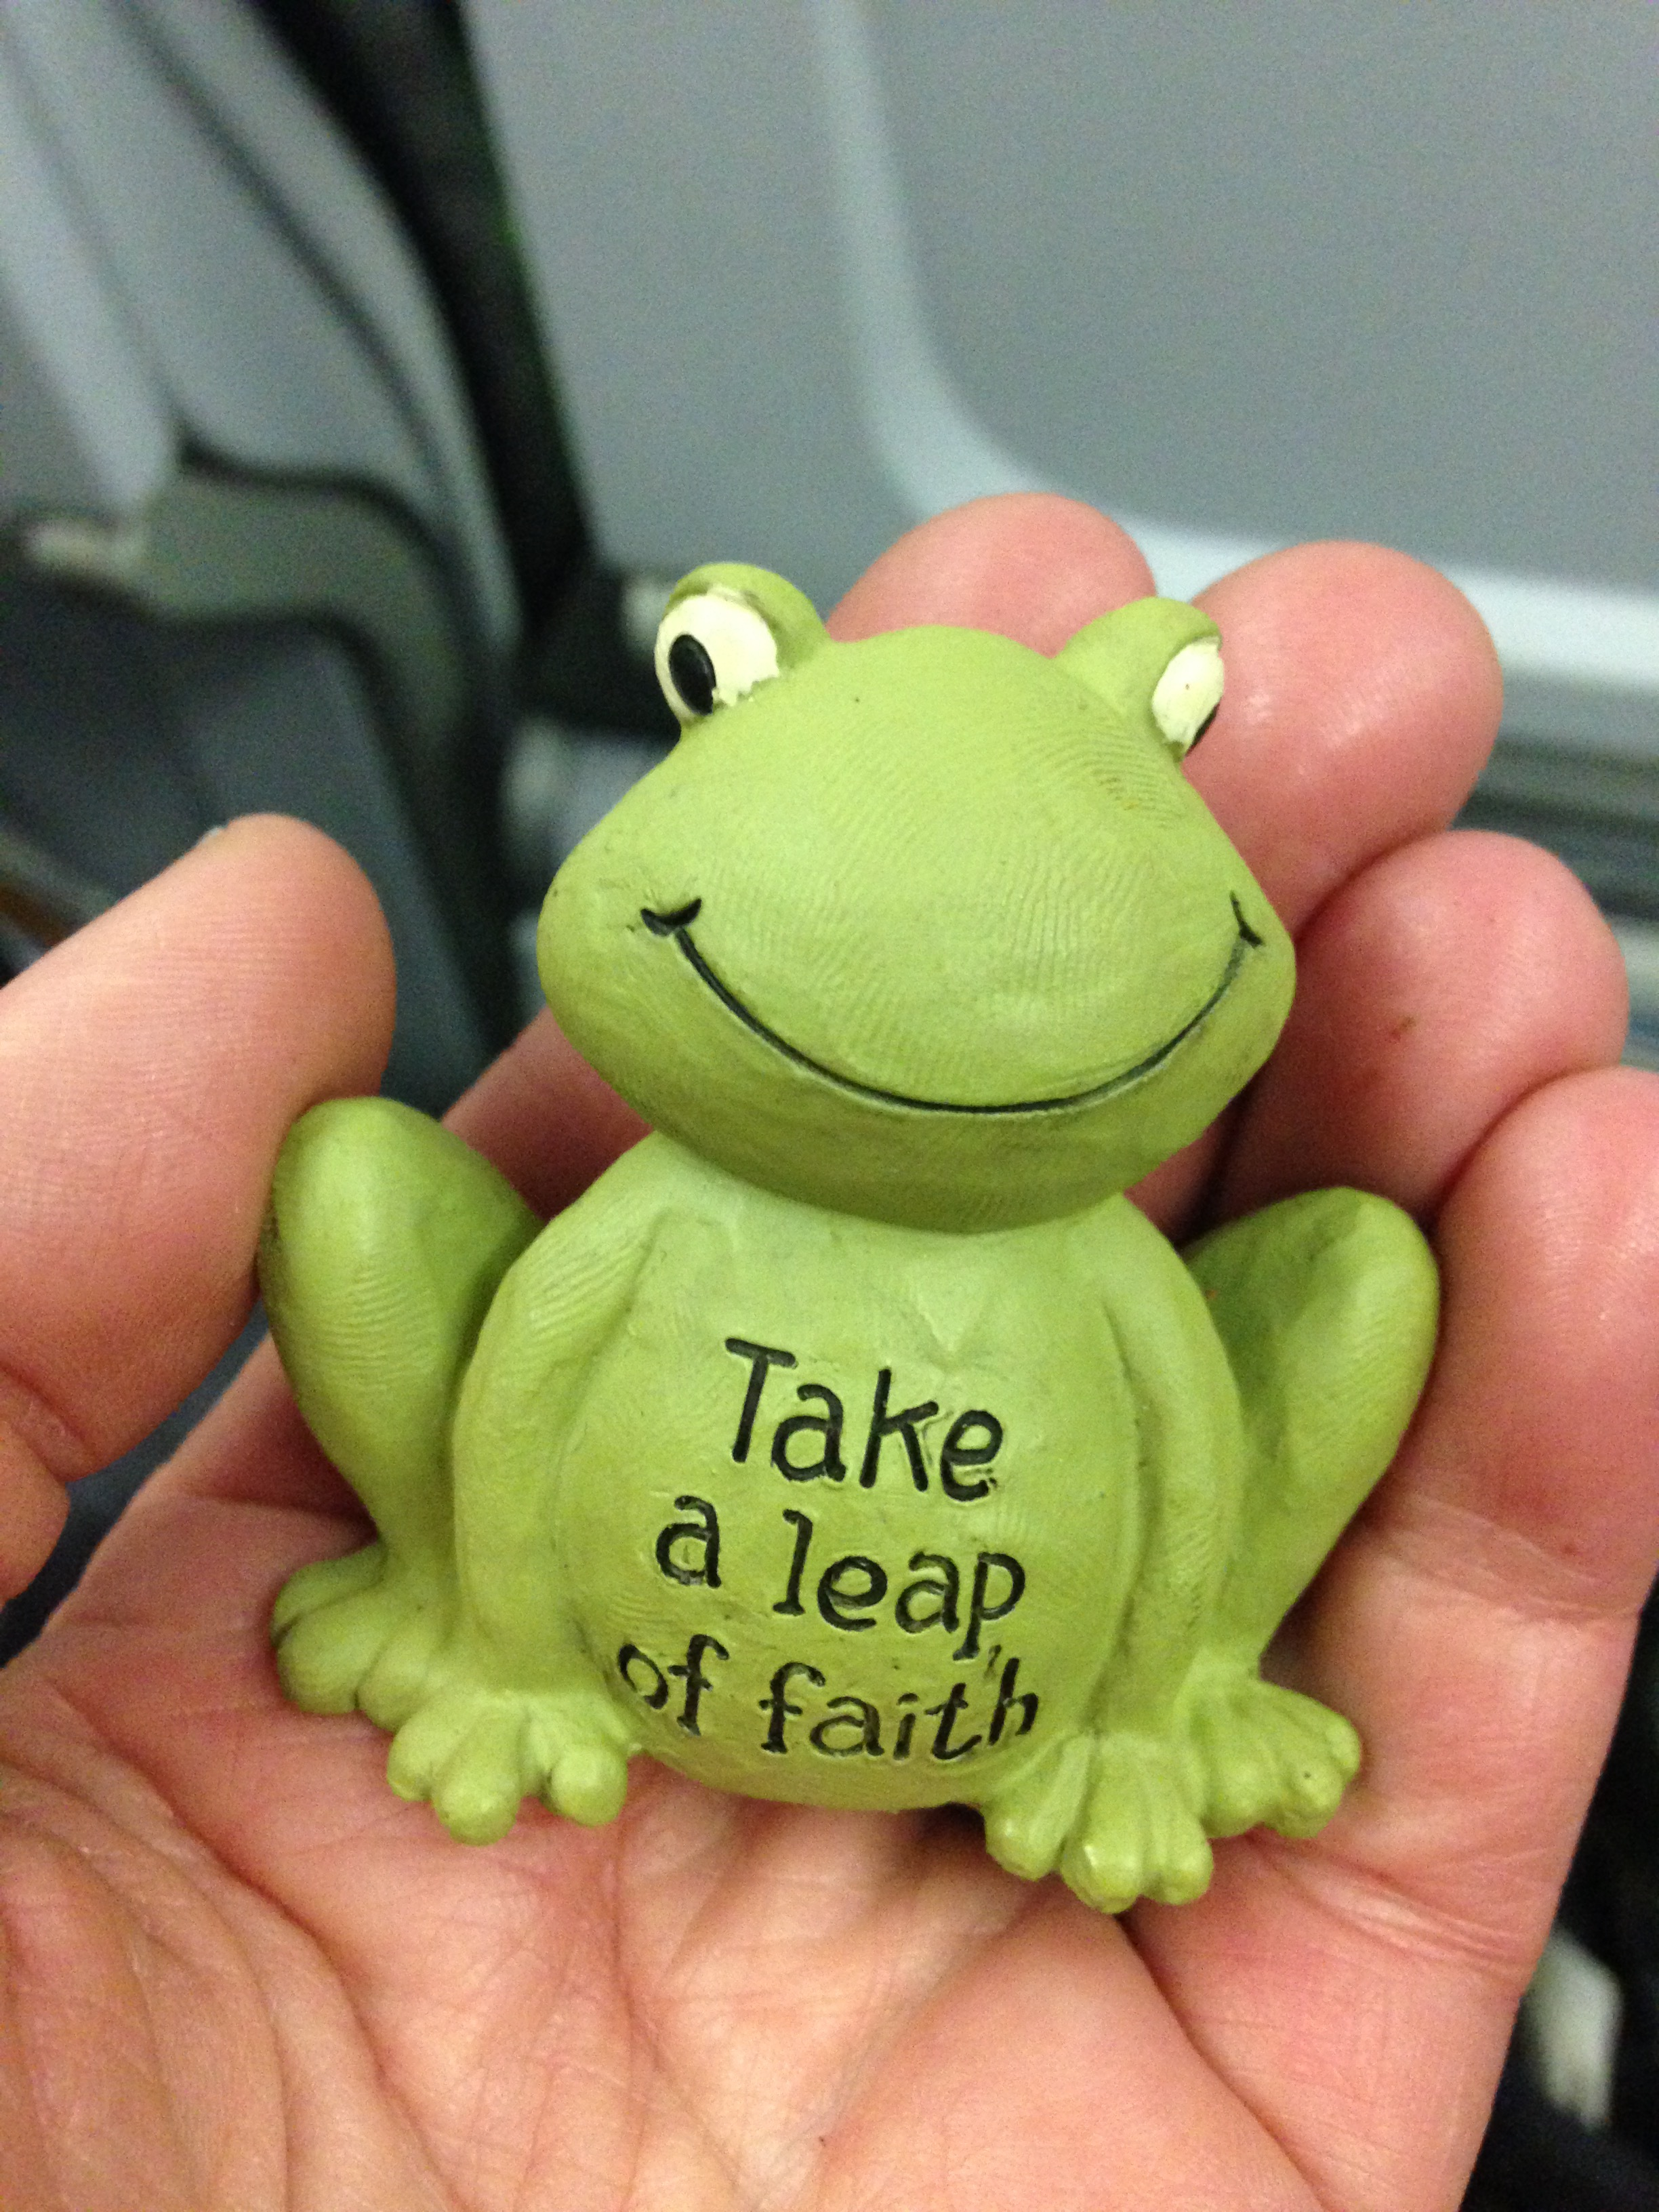 I held this little frog in my hand while flying overseas.